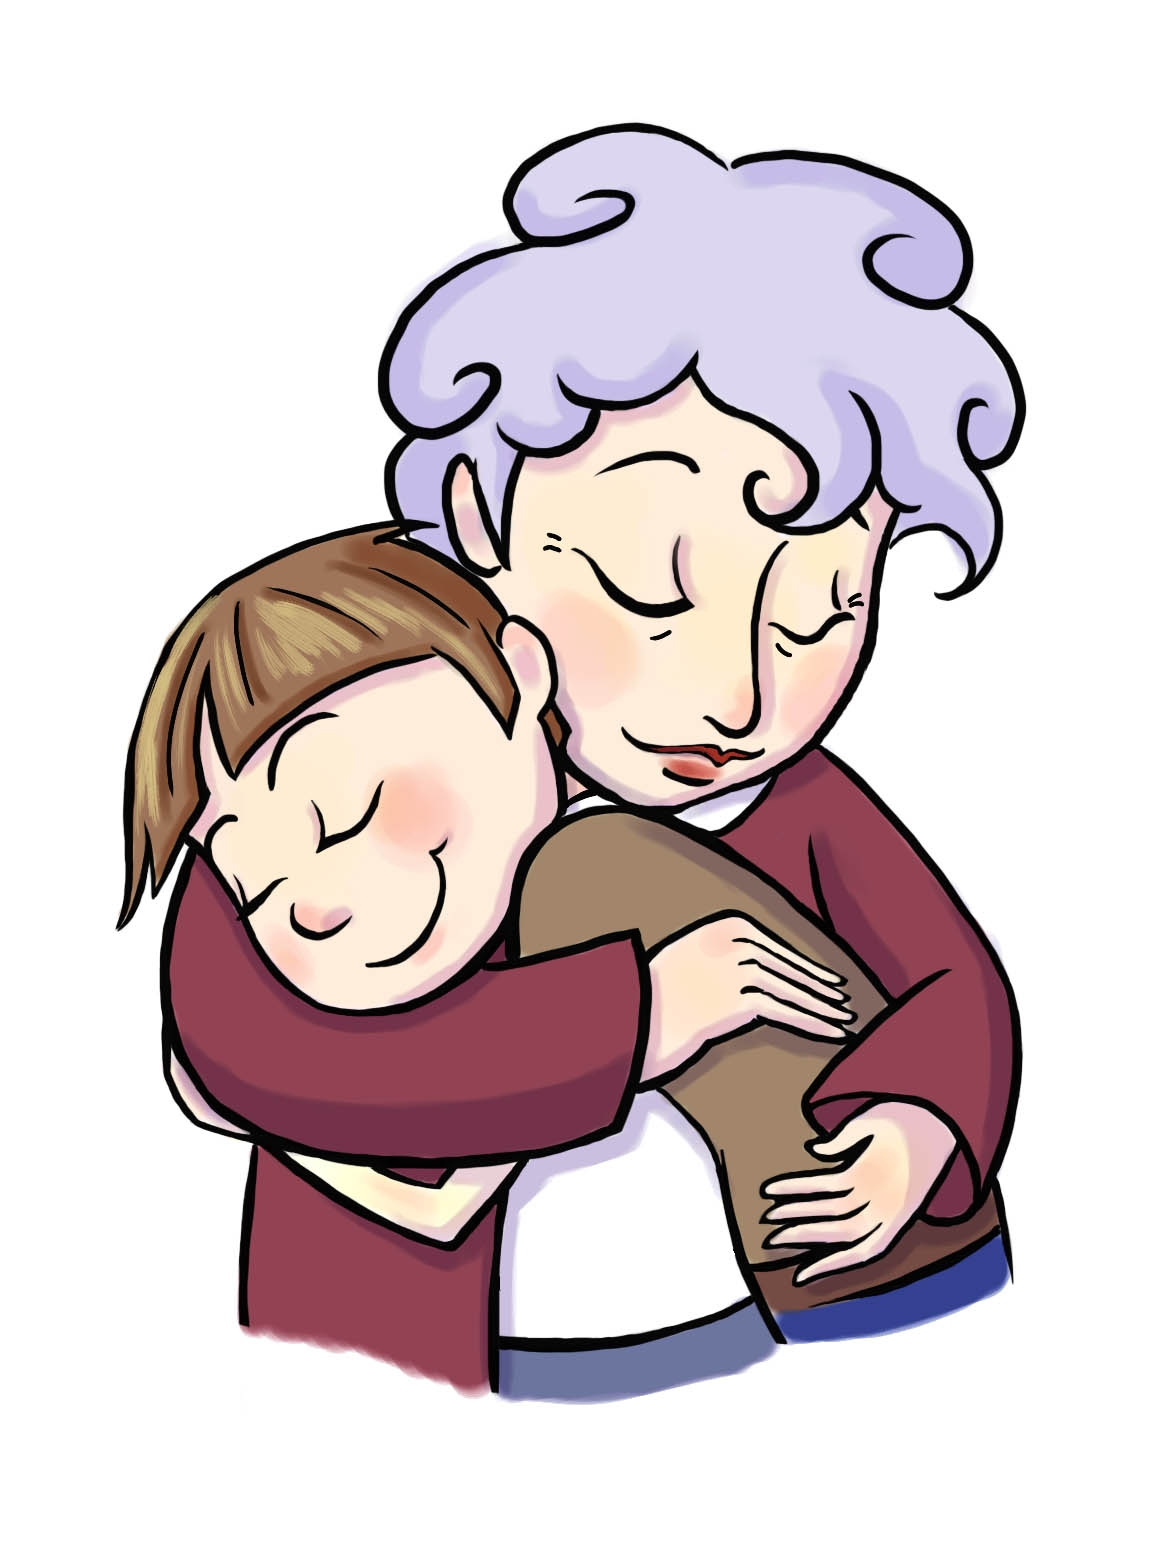 Hug clipart Best of Hug clipart grandma birthday Pencil and.